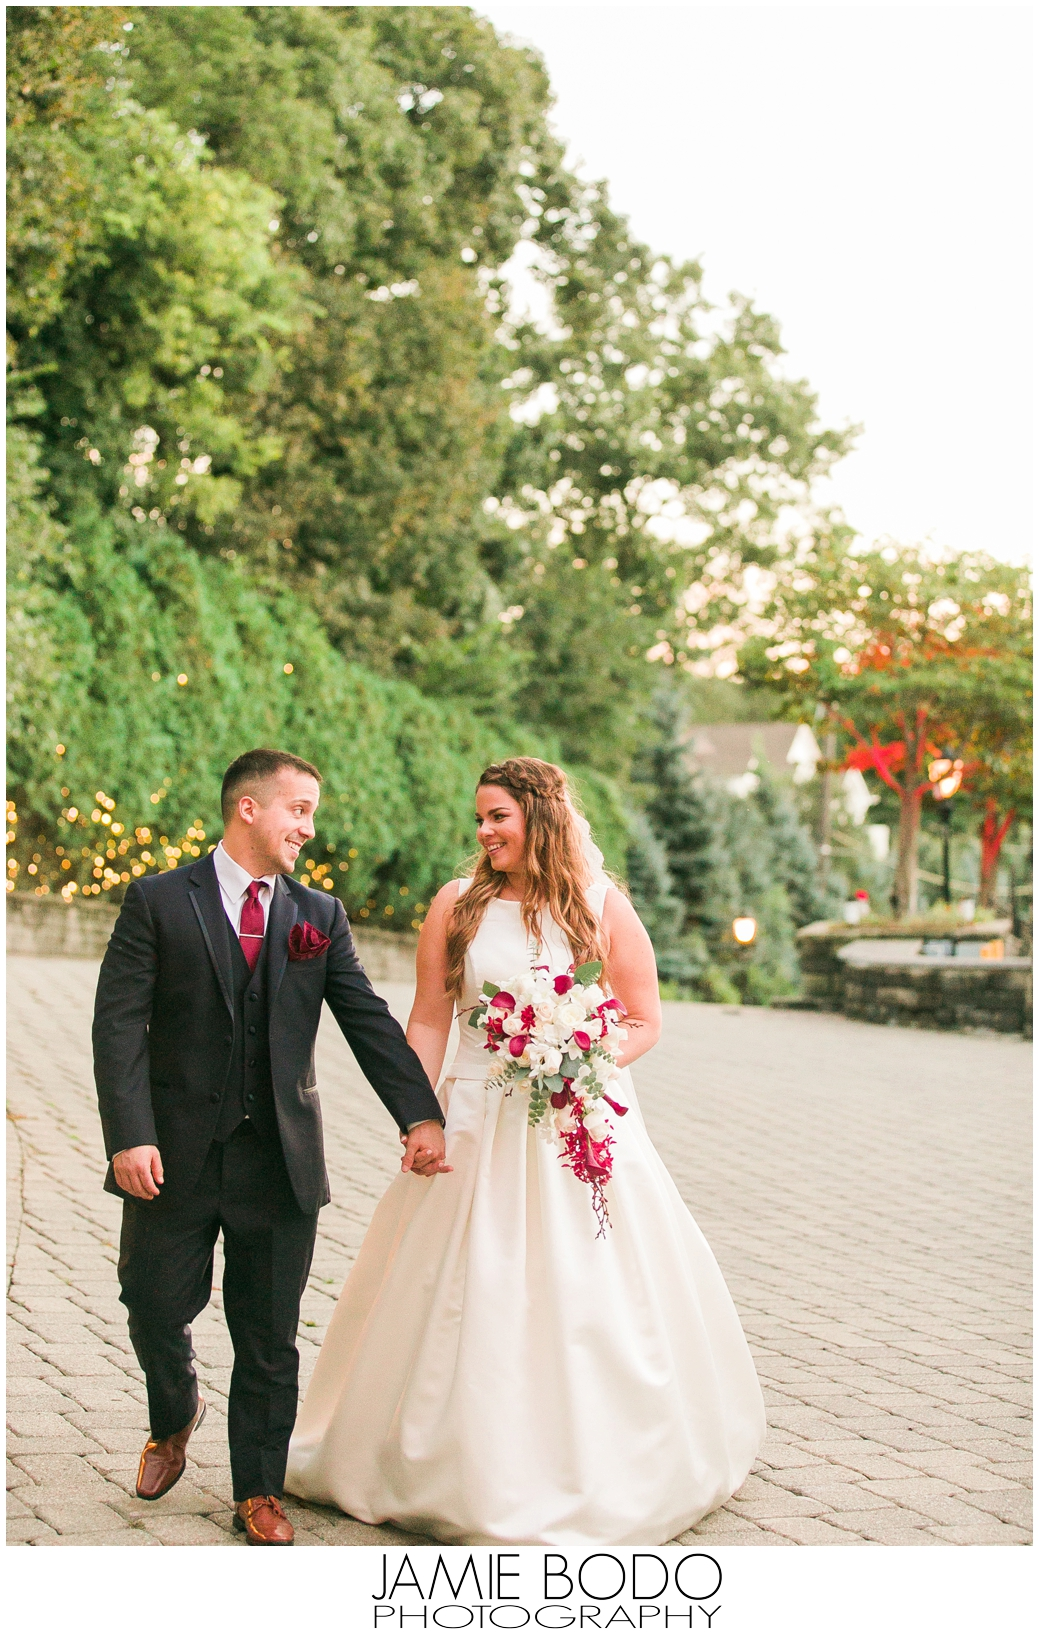 Samantha + Gonzalo on September 28, 2018 ♥ Jamie Bodo Photography at The Westmount Country Club (Woodland Park, NJ)